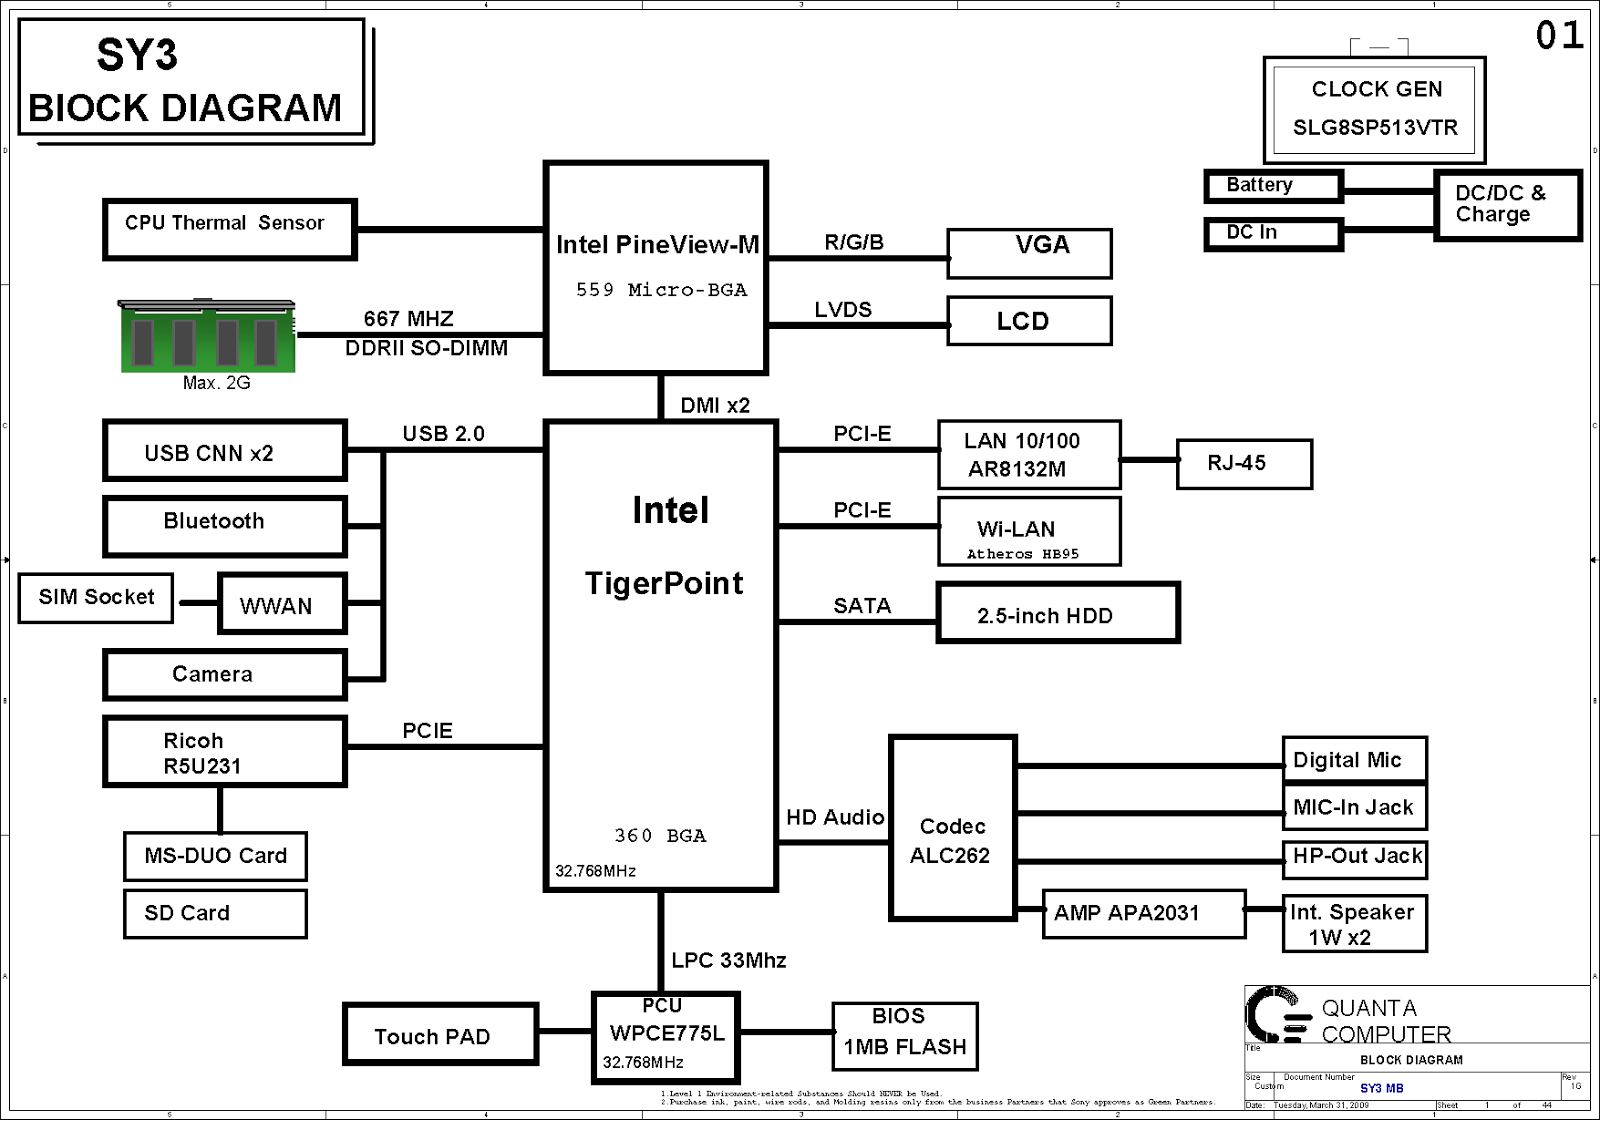 Schematic Diagram Gigabyte Motherboard: Laptop maintenance